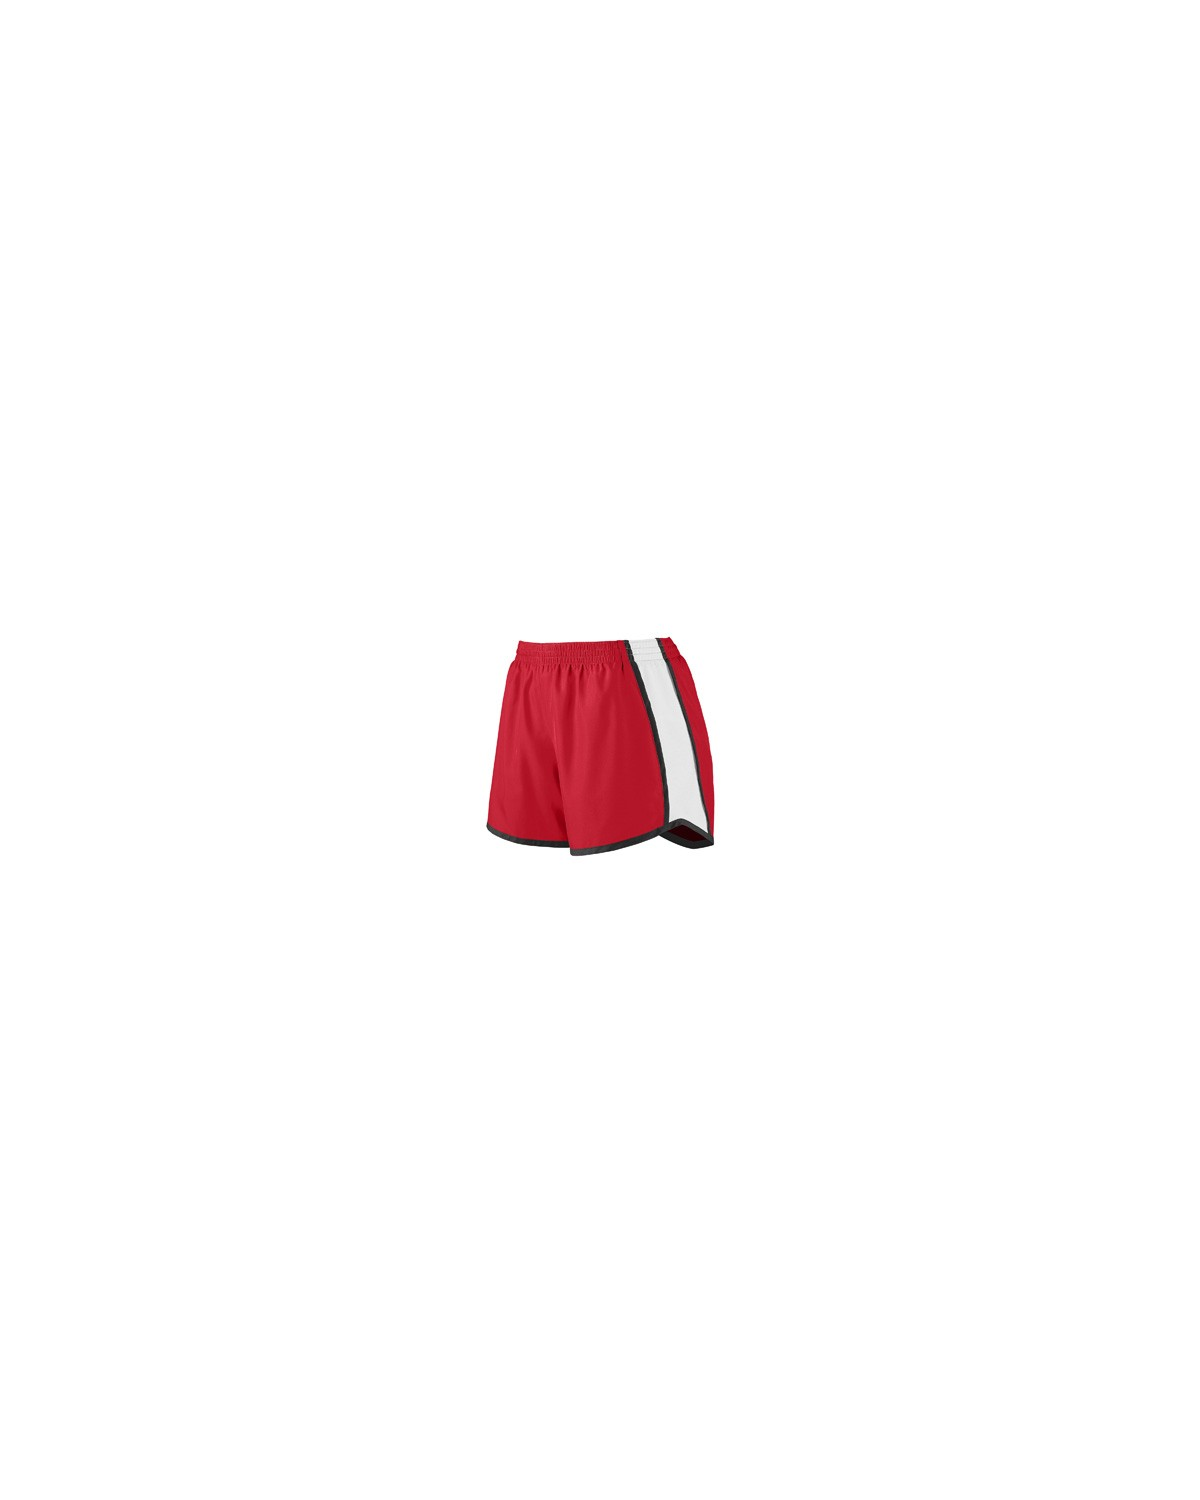 1266 Augusta Drop Ship RED/WHITE/BLK